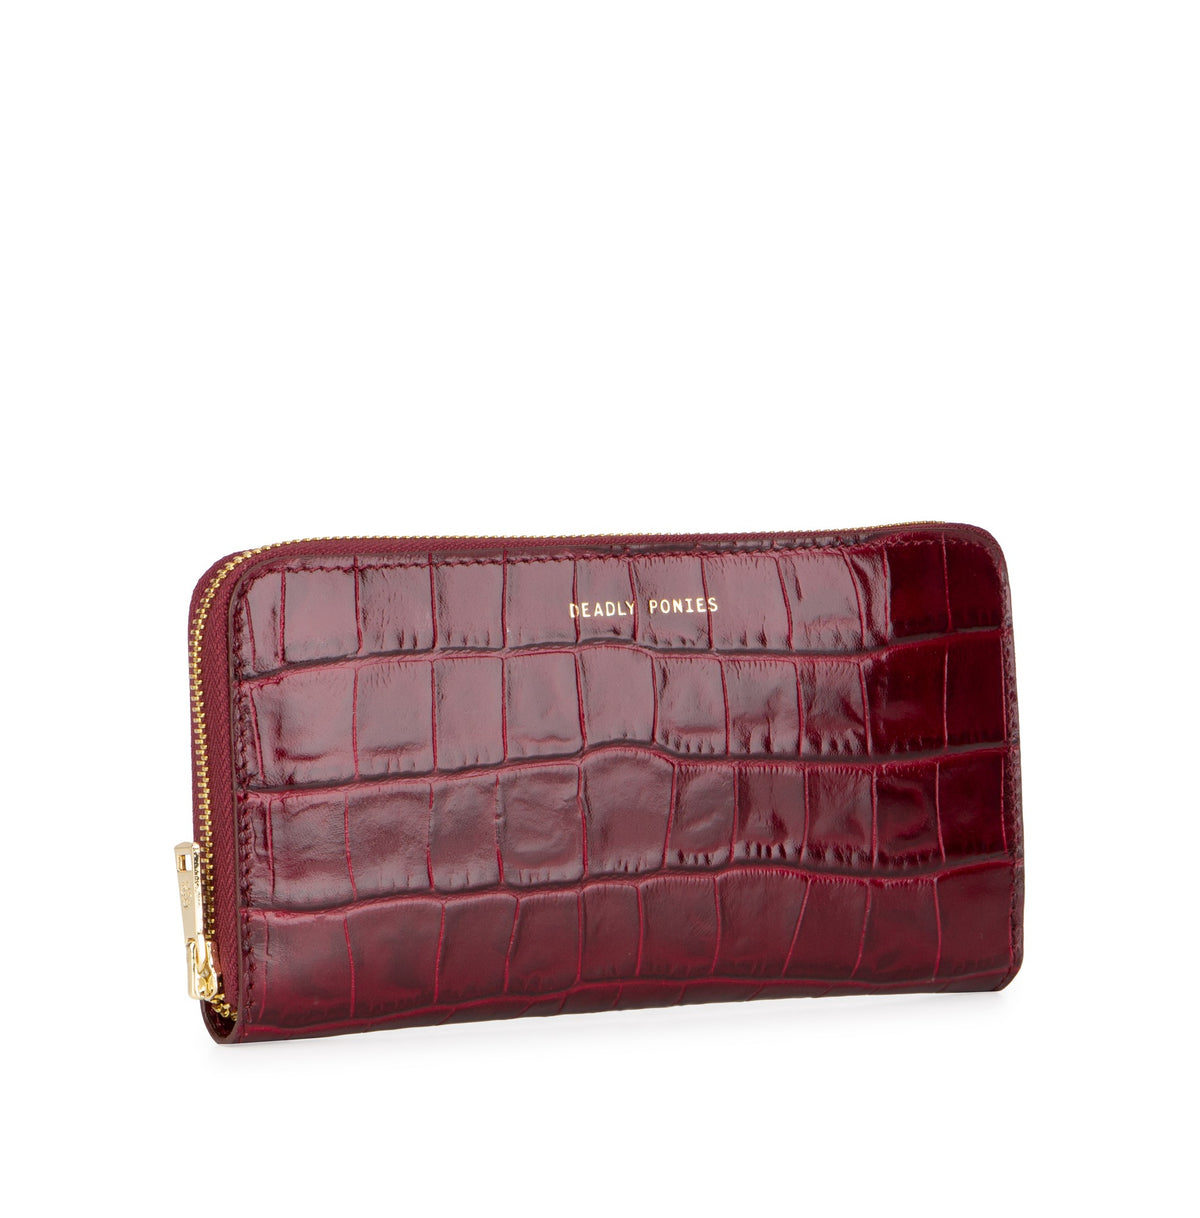 Deadly Ponies Mr Wallet Croc // Bordeaux